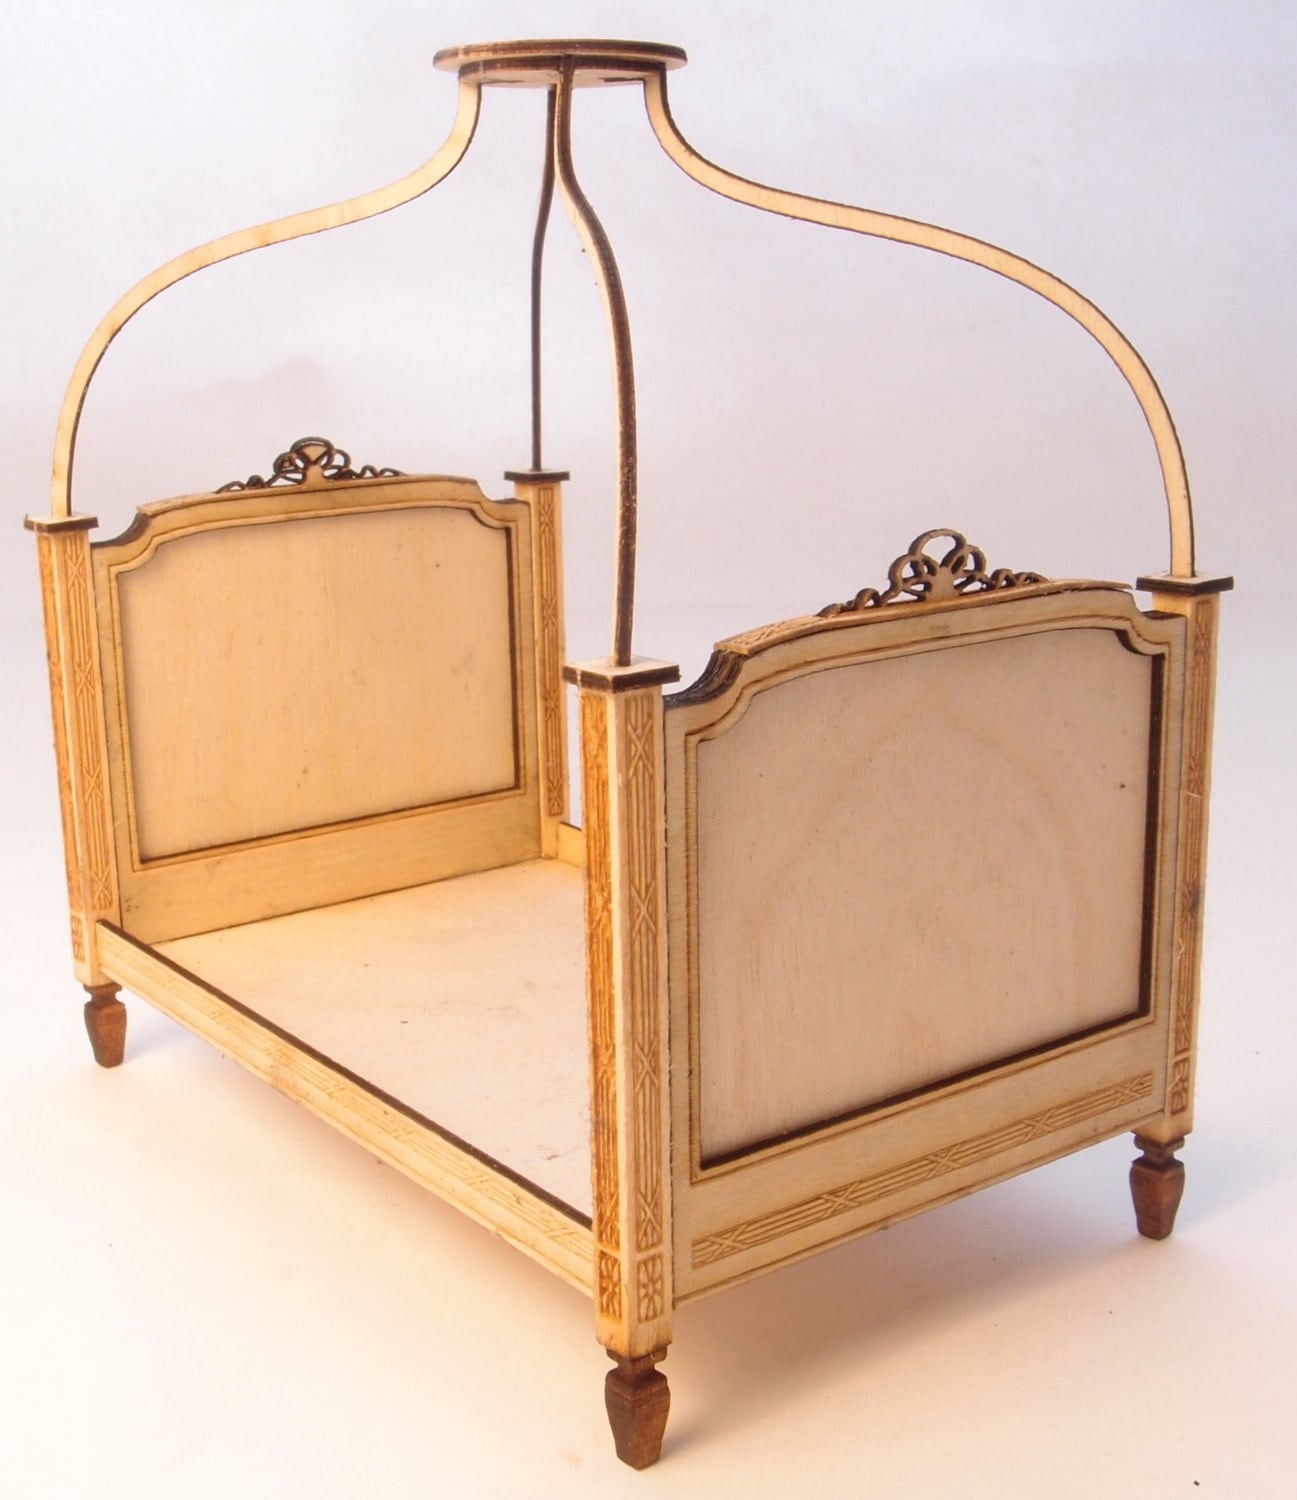 1:24 Scale Miniature Dollhouse Furniture Kit French Canopy Bed